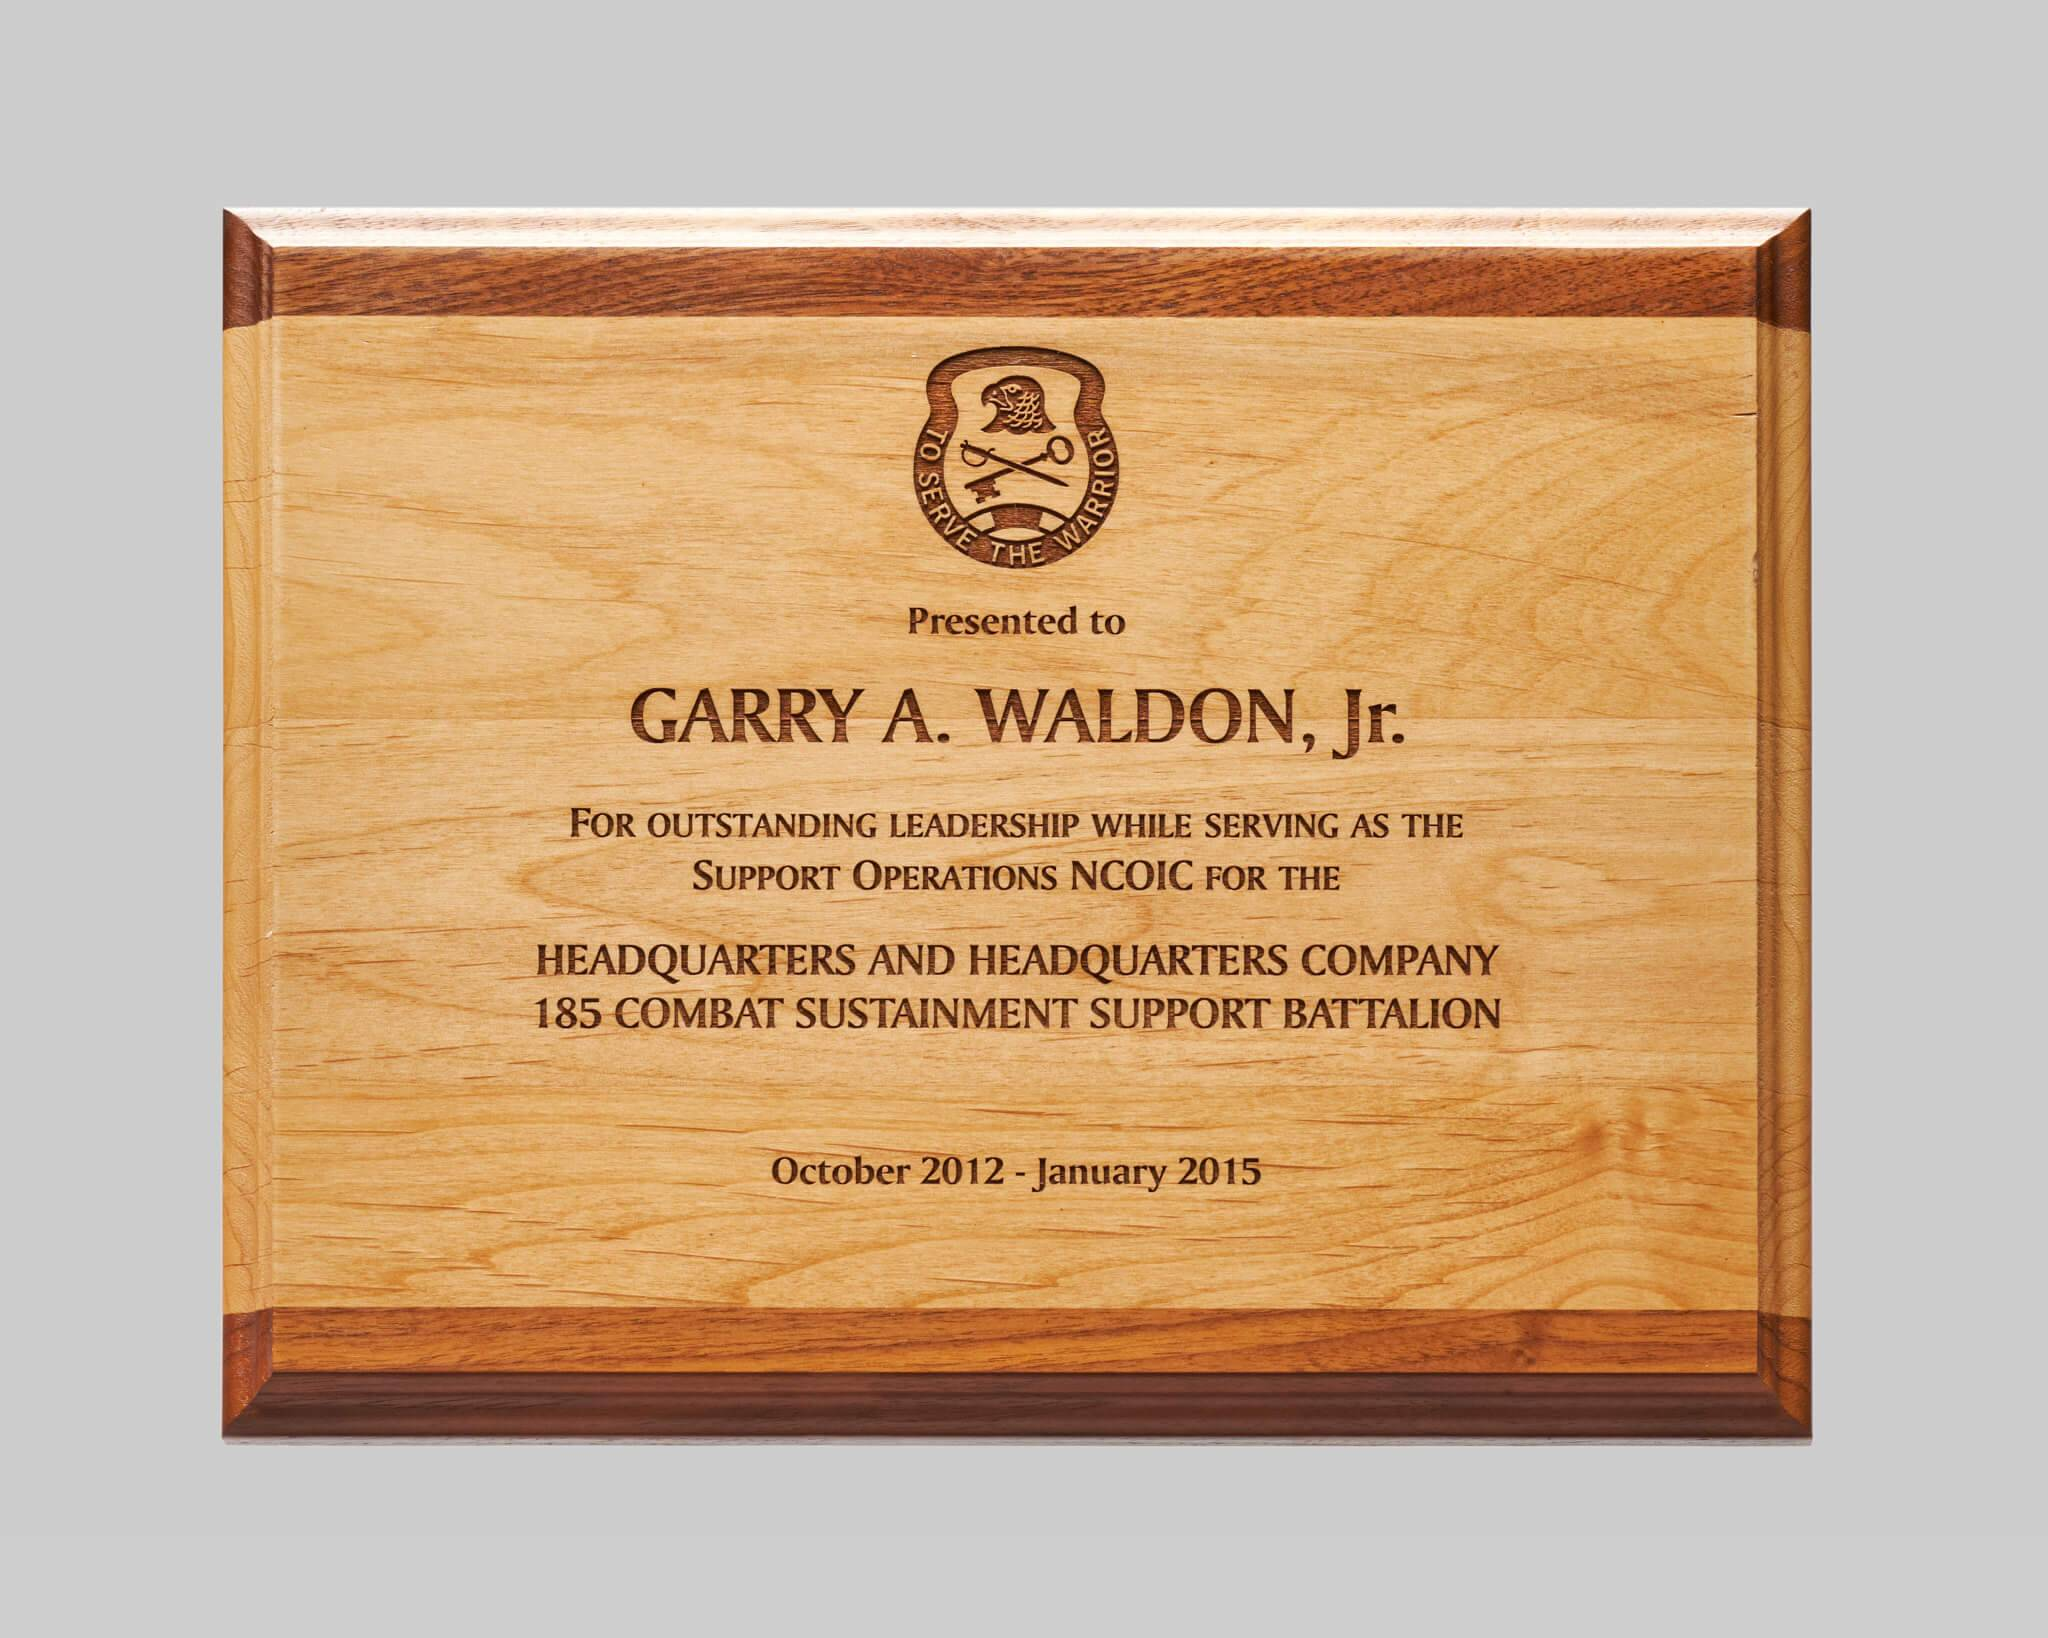 custom military wooden plaques available from Awards Program Services in Iowa